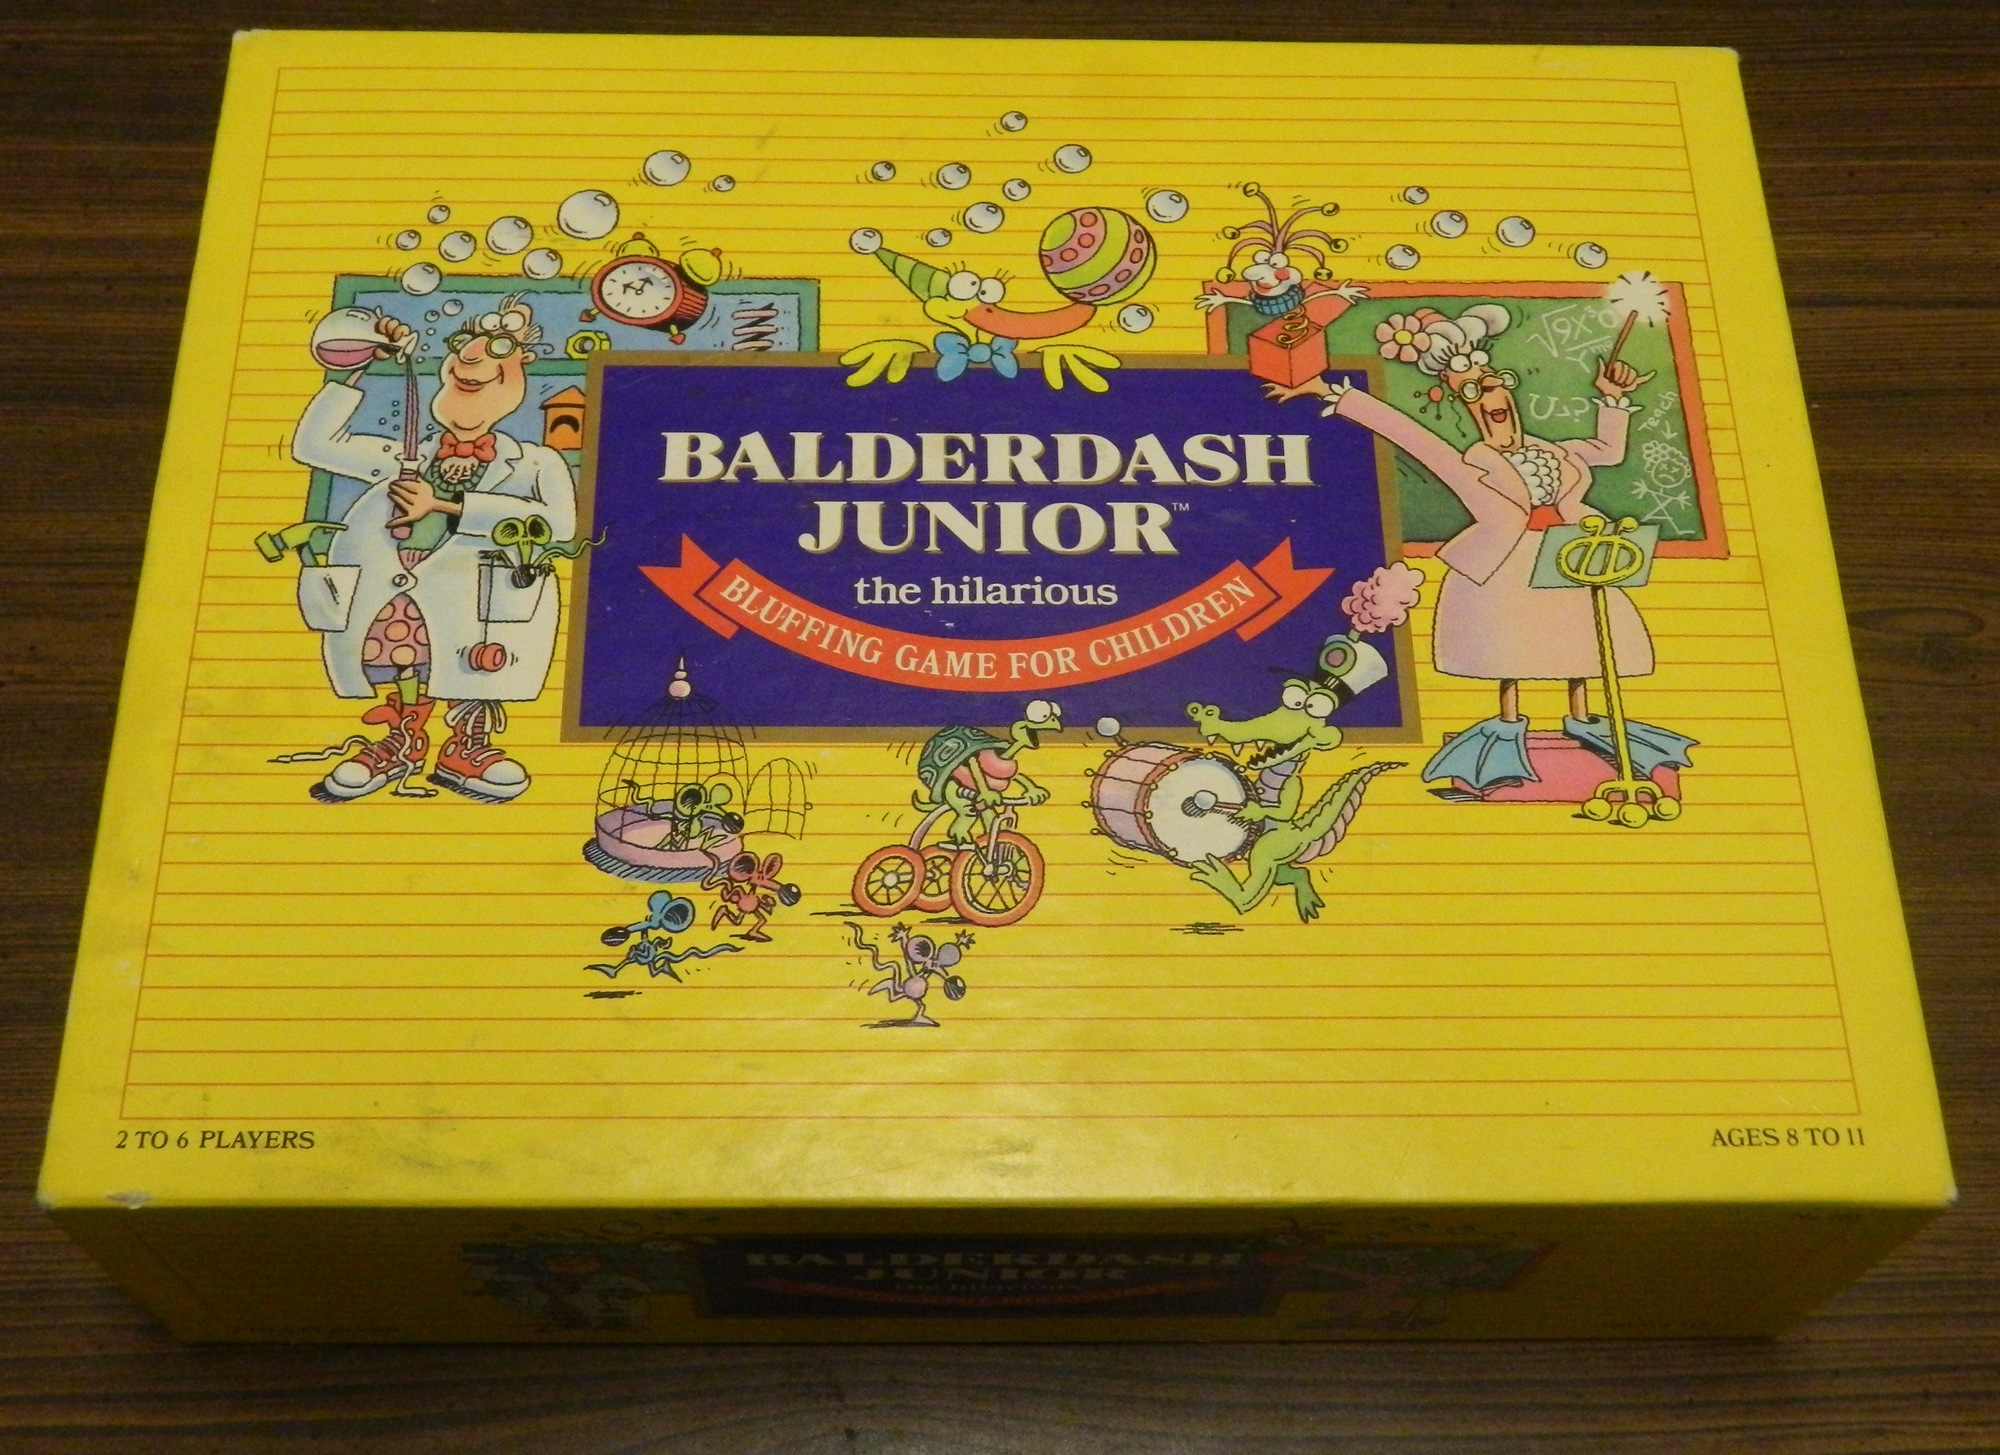 Box in Balderdash Junior